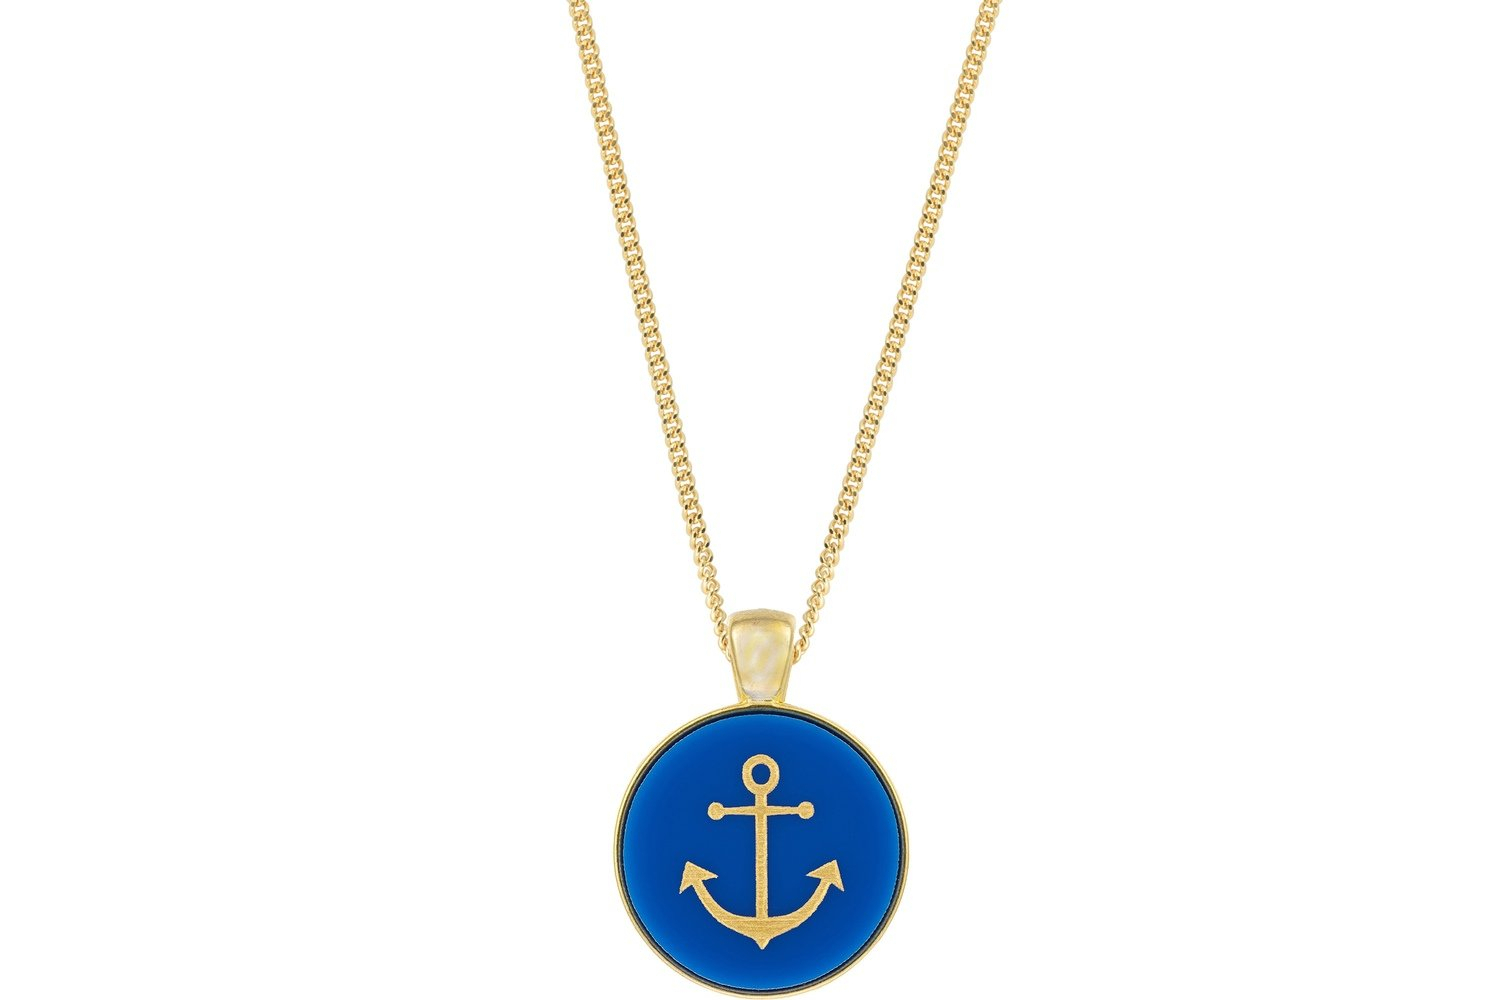 Anchor Pendant Classic Style With Bezel On Chain Necklace Inside Latest Classic Anchor Chain Necklaces (View 9 of 25)